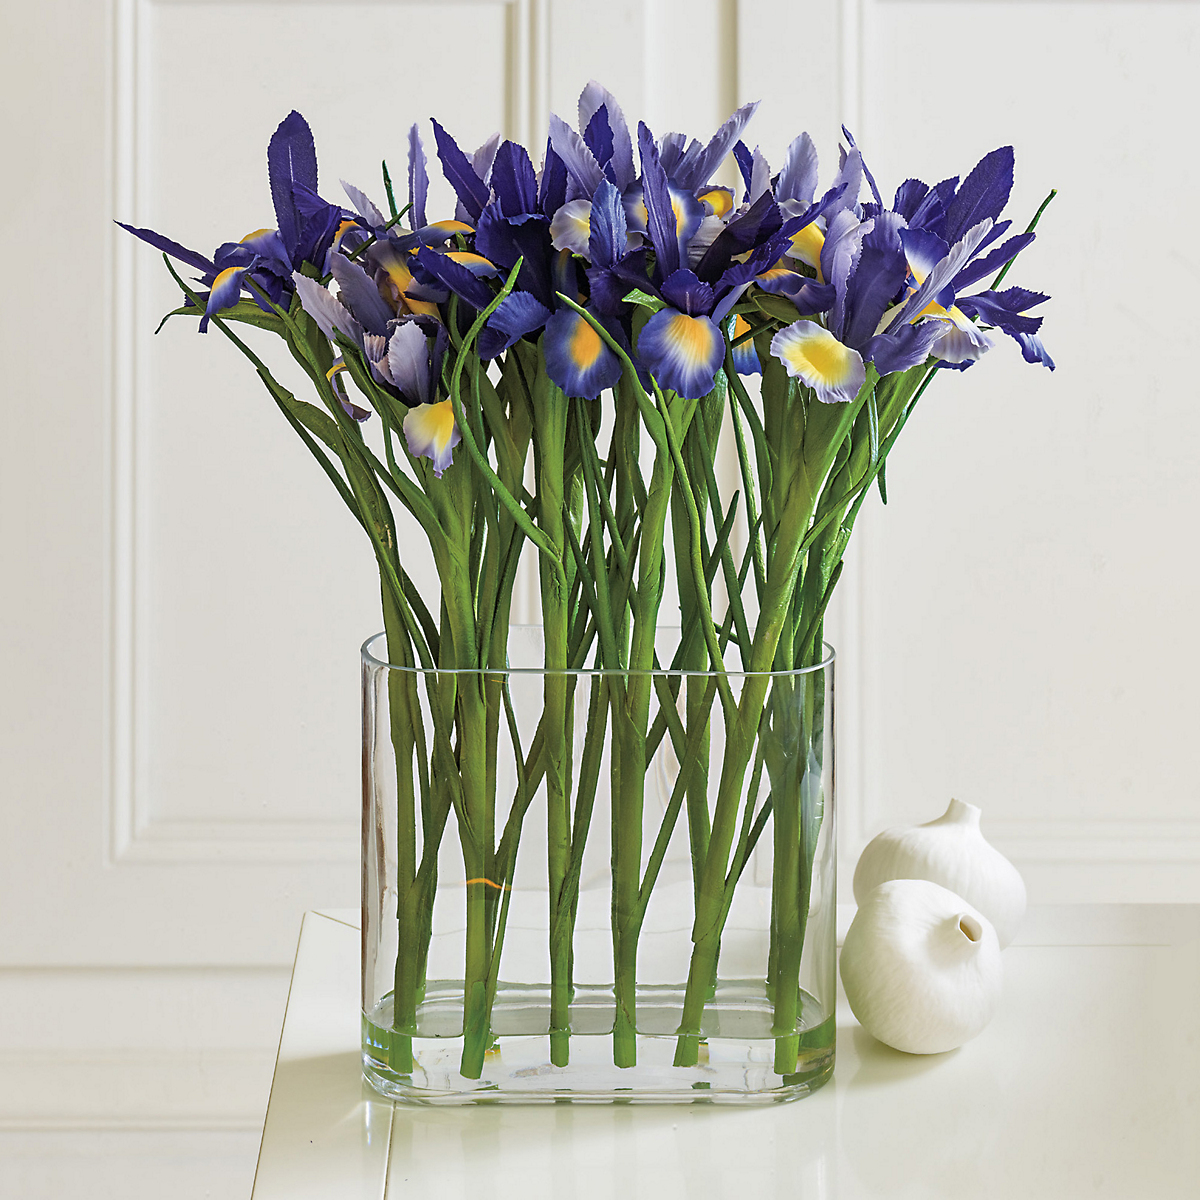 Saint Remy Iris Arrangement Gumps